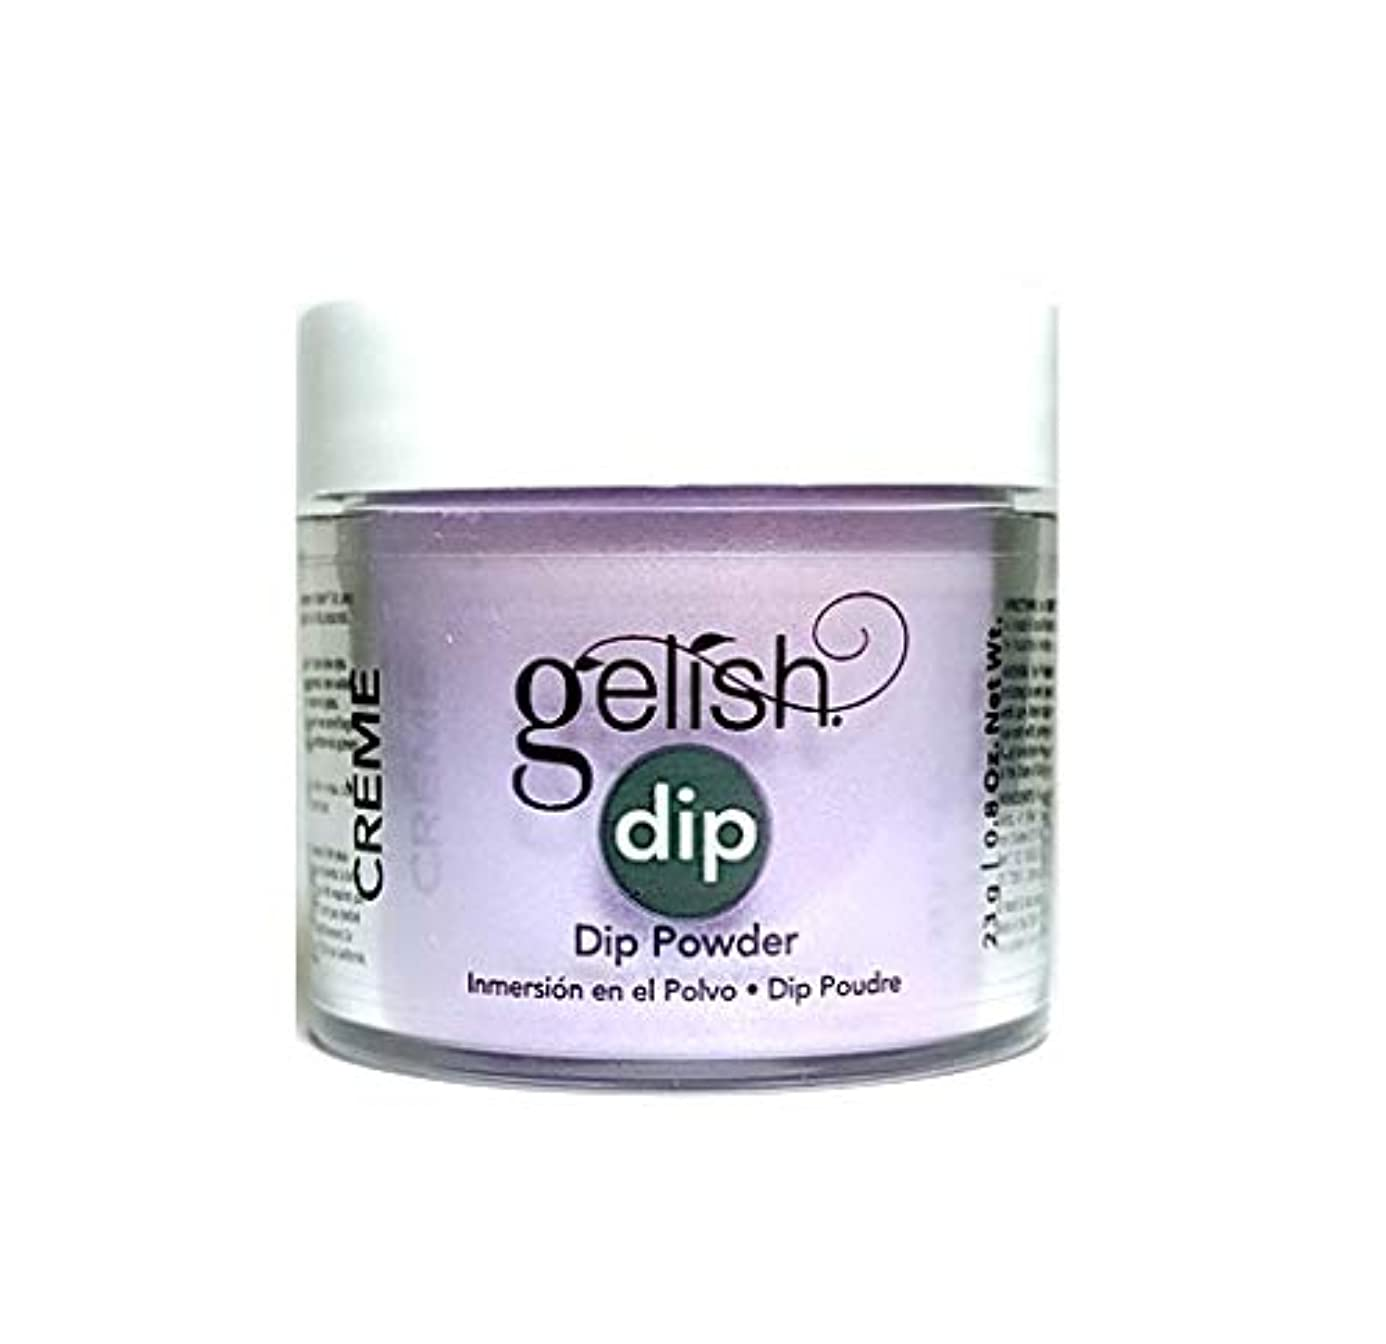 背が高い沼地マルクス主義者Harmony Gelish - Dip Powder - All The Queen's Bling - 23g / 0.8oz